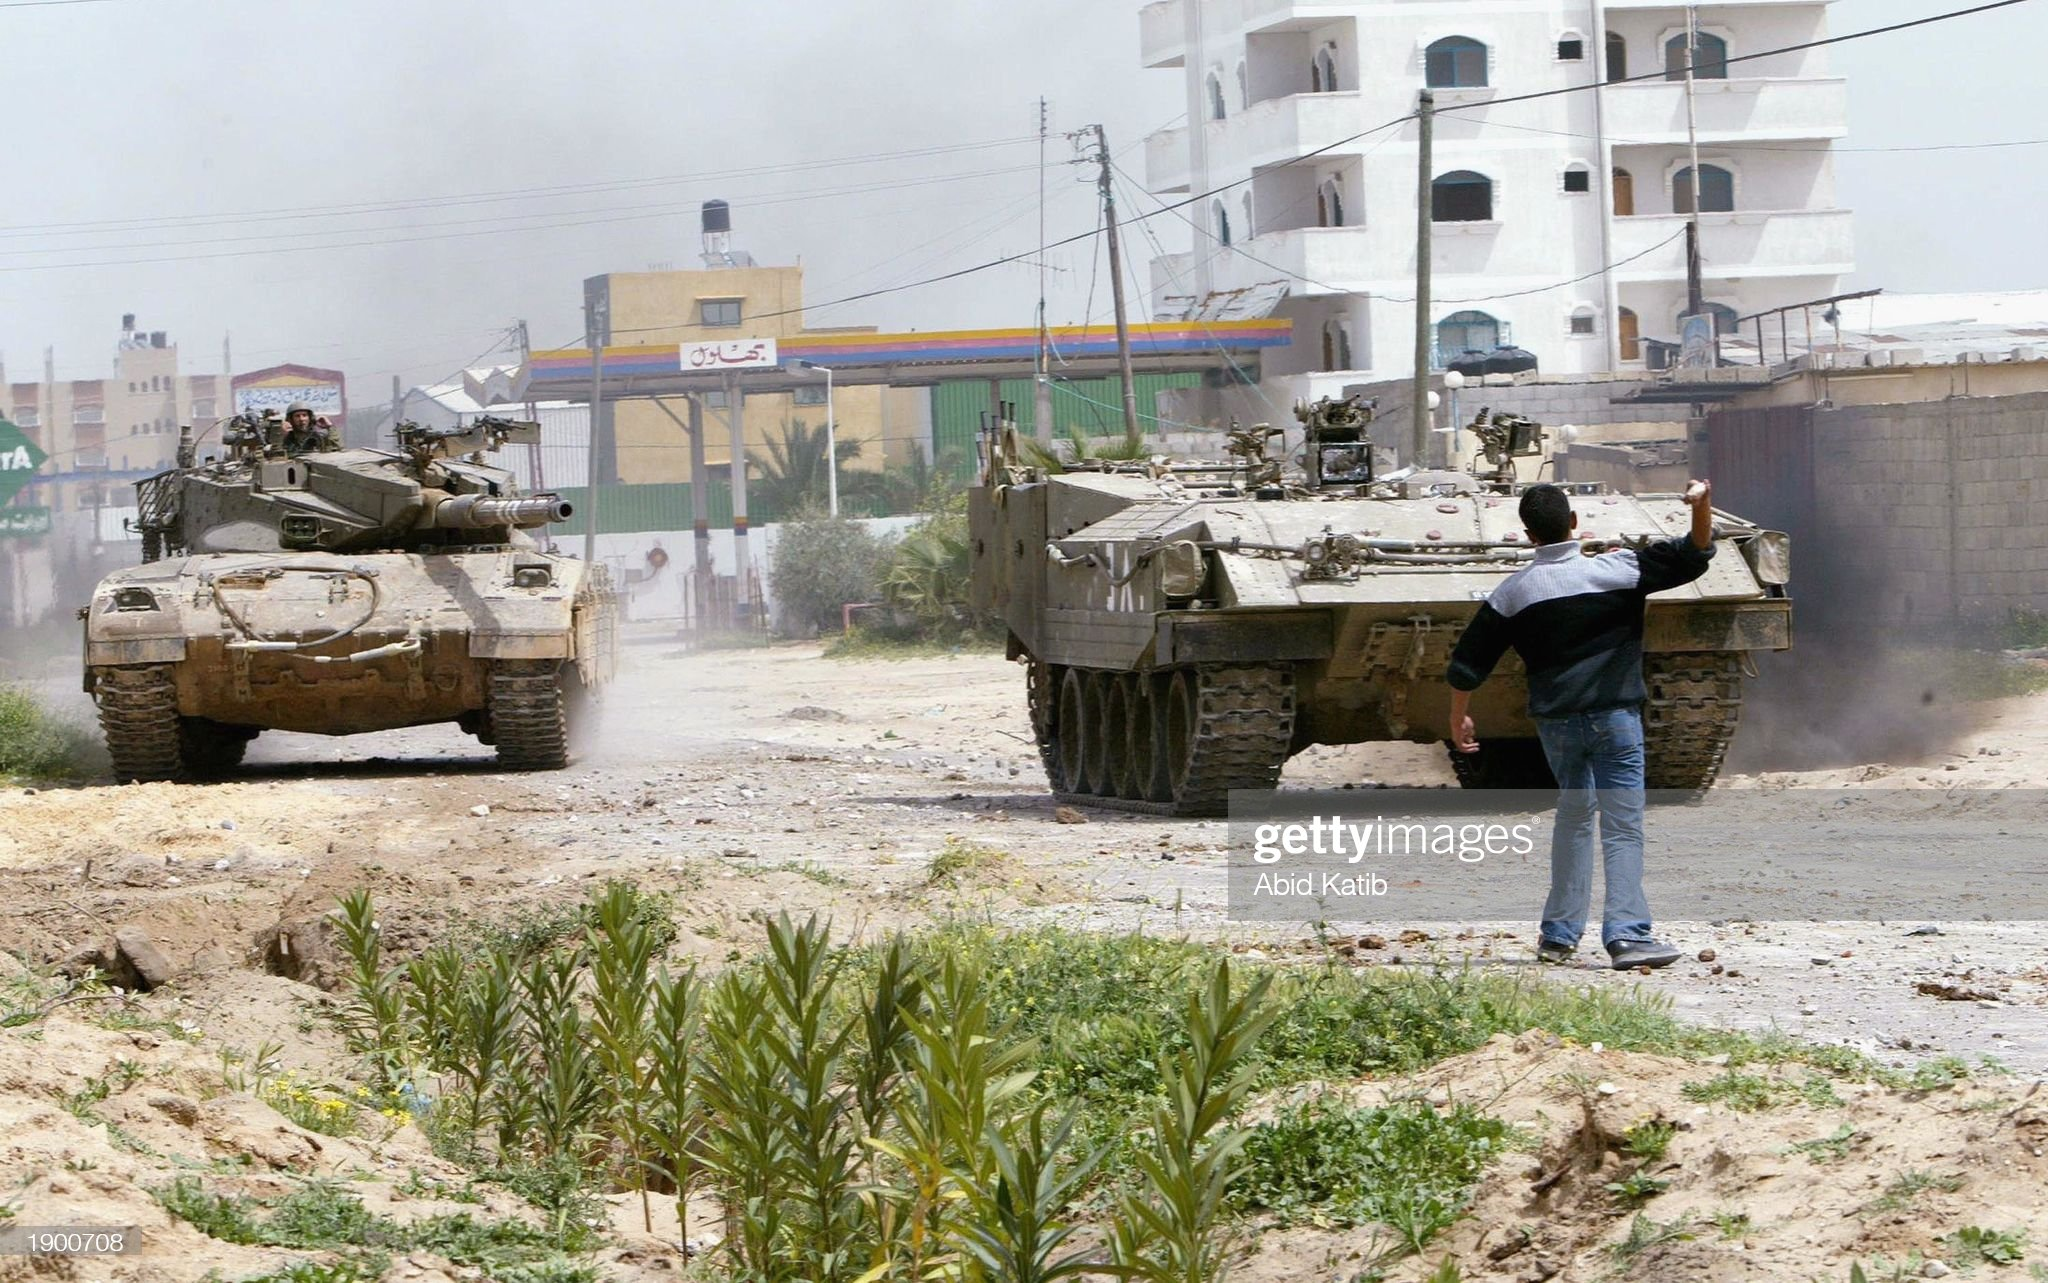 https://media.gettyimages.com/photos/palestinian-youth-throws-stones-at-an-israeli-armored-personnel-and-picture-id1900708?s=2048x2048